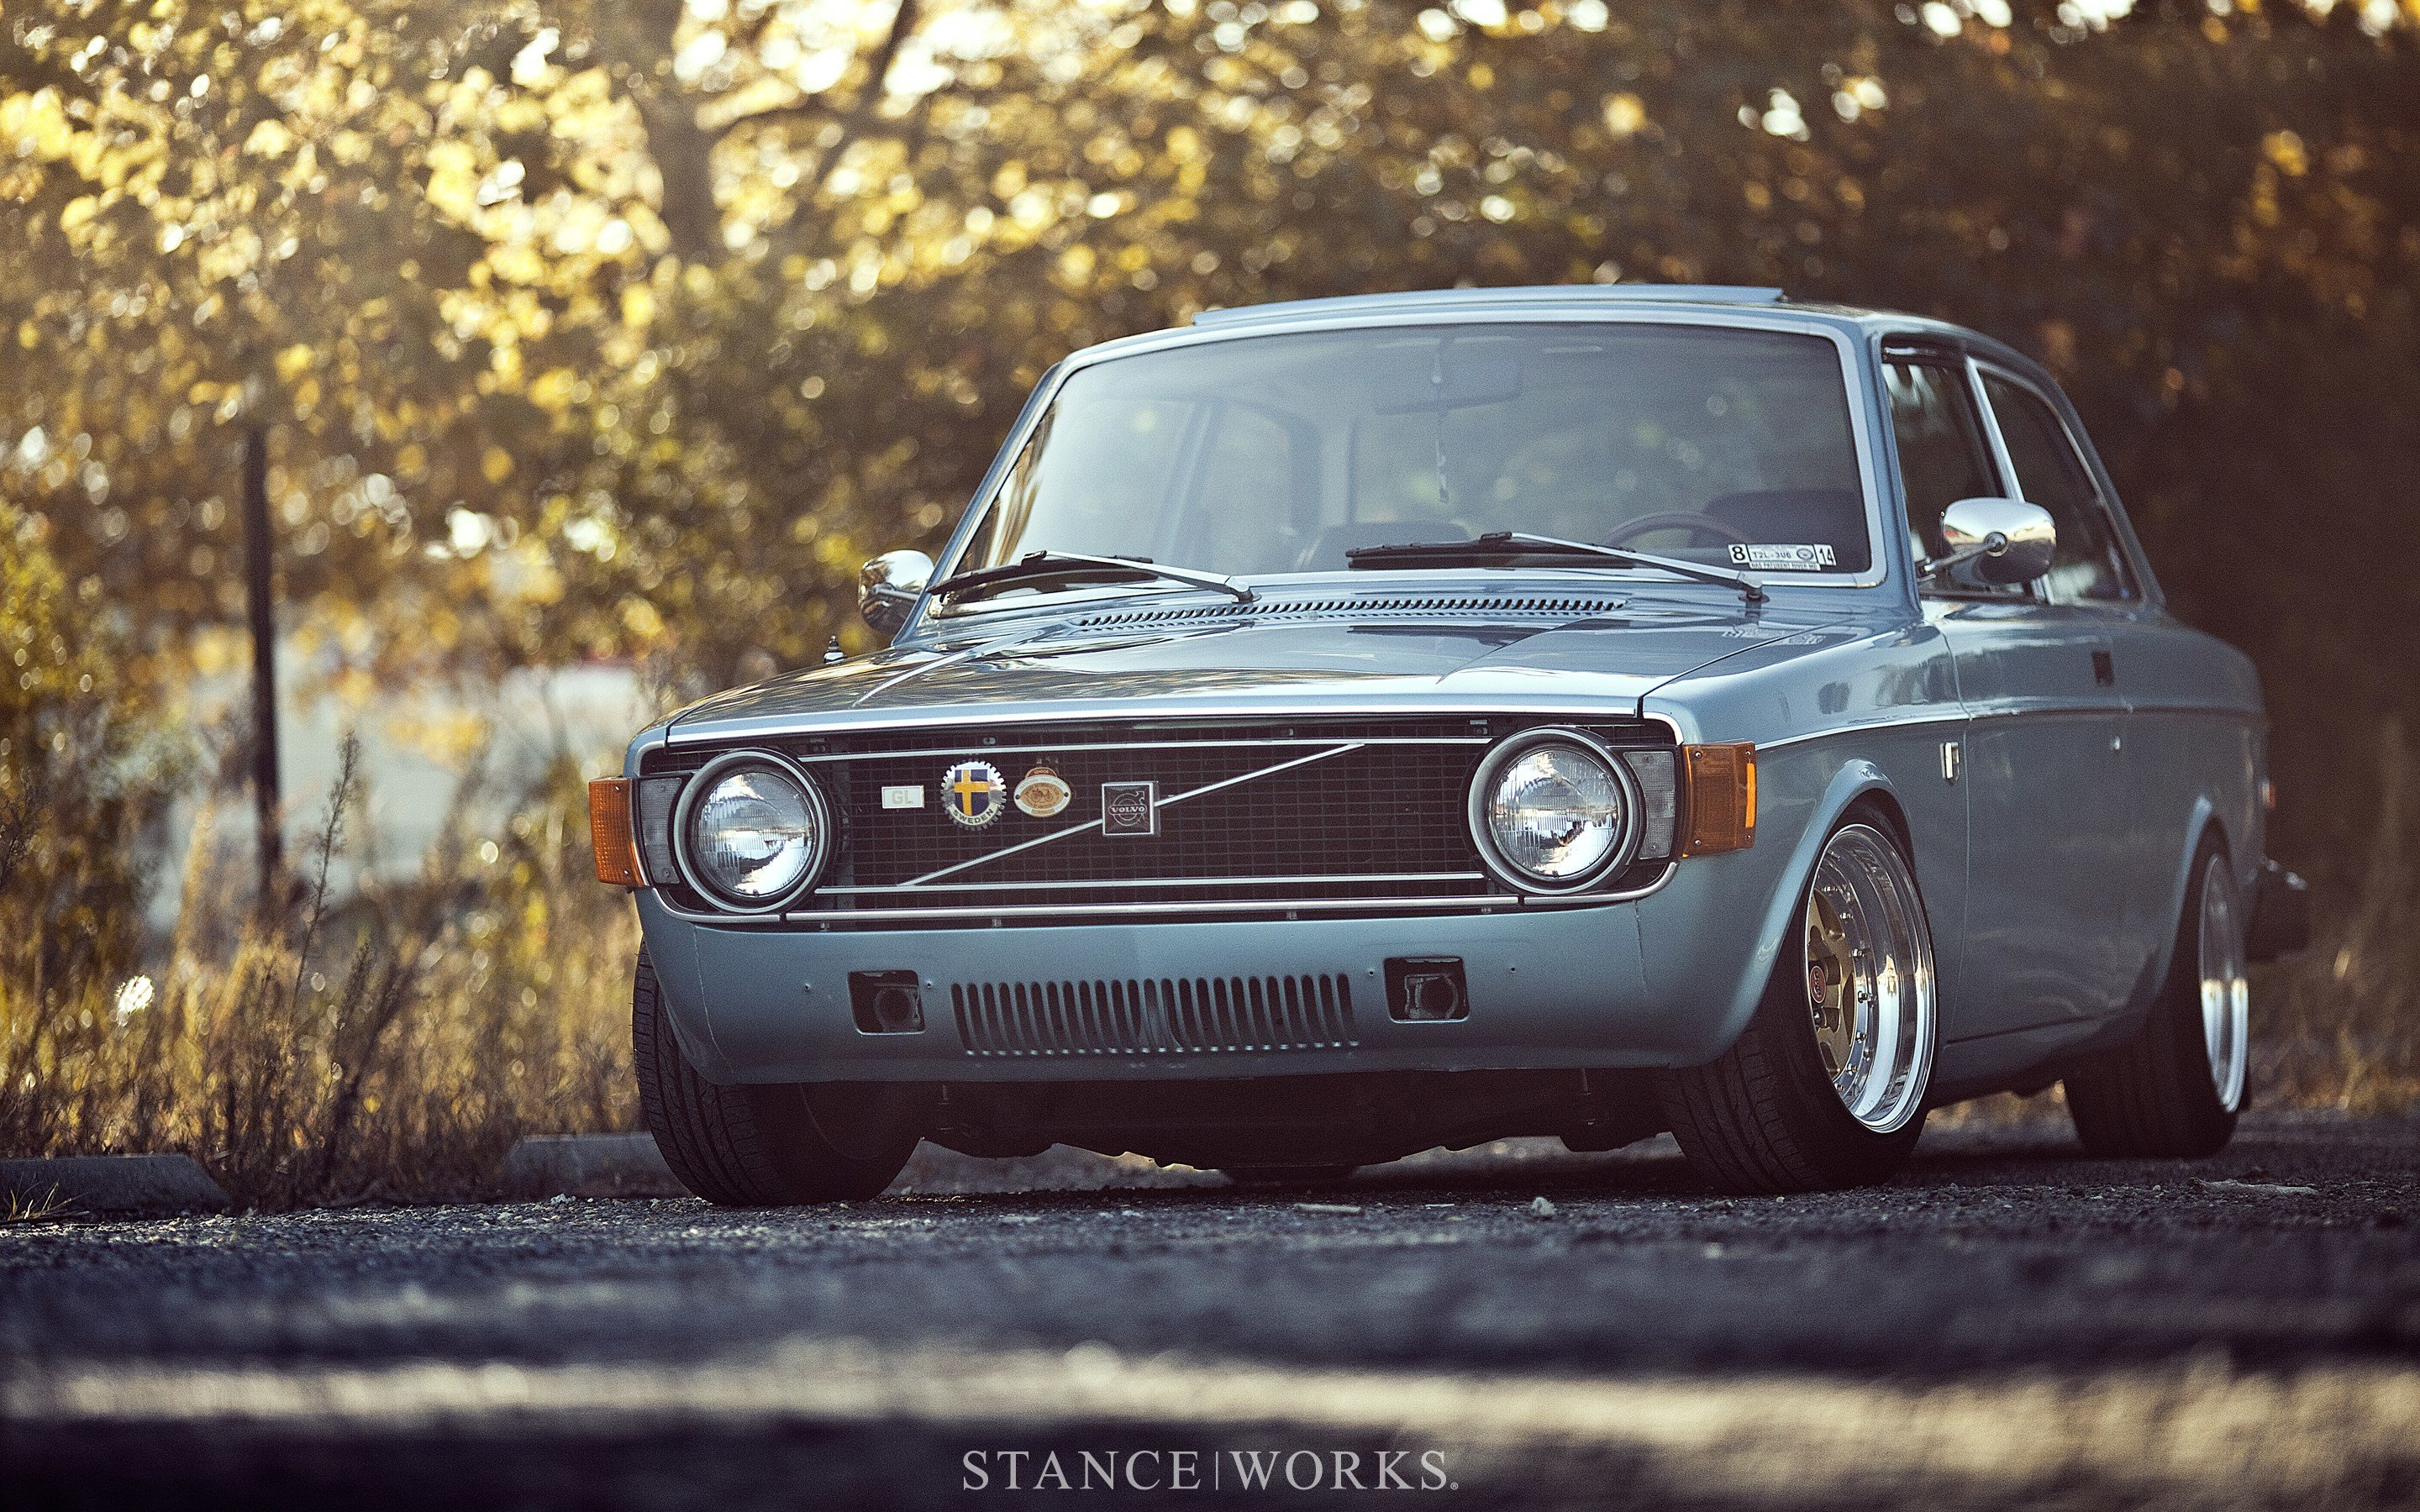 New Stance Works H2Oi Volvo 142 Desktop Wallpaper Download On This Month